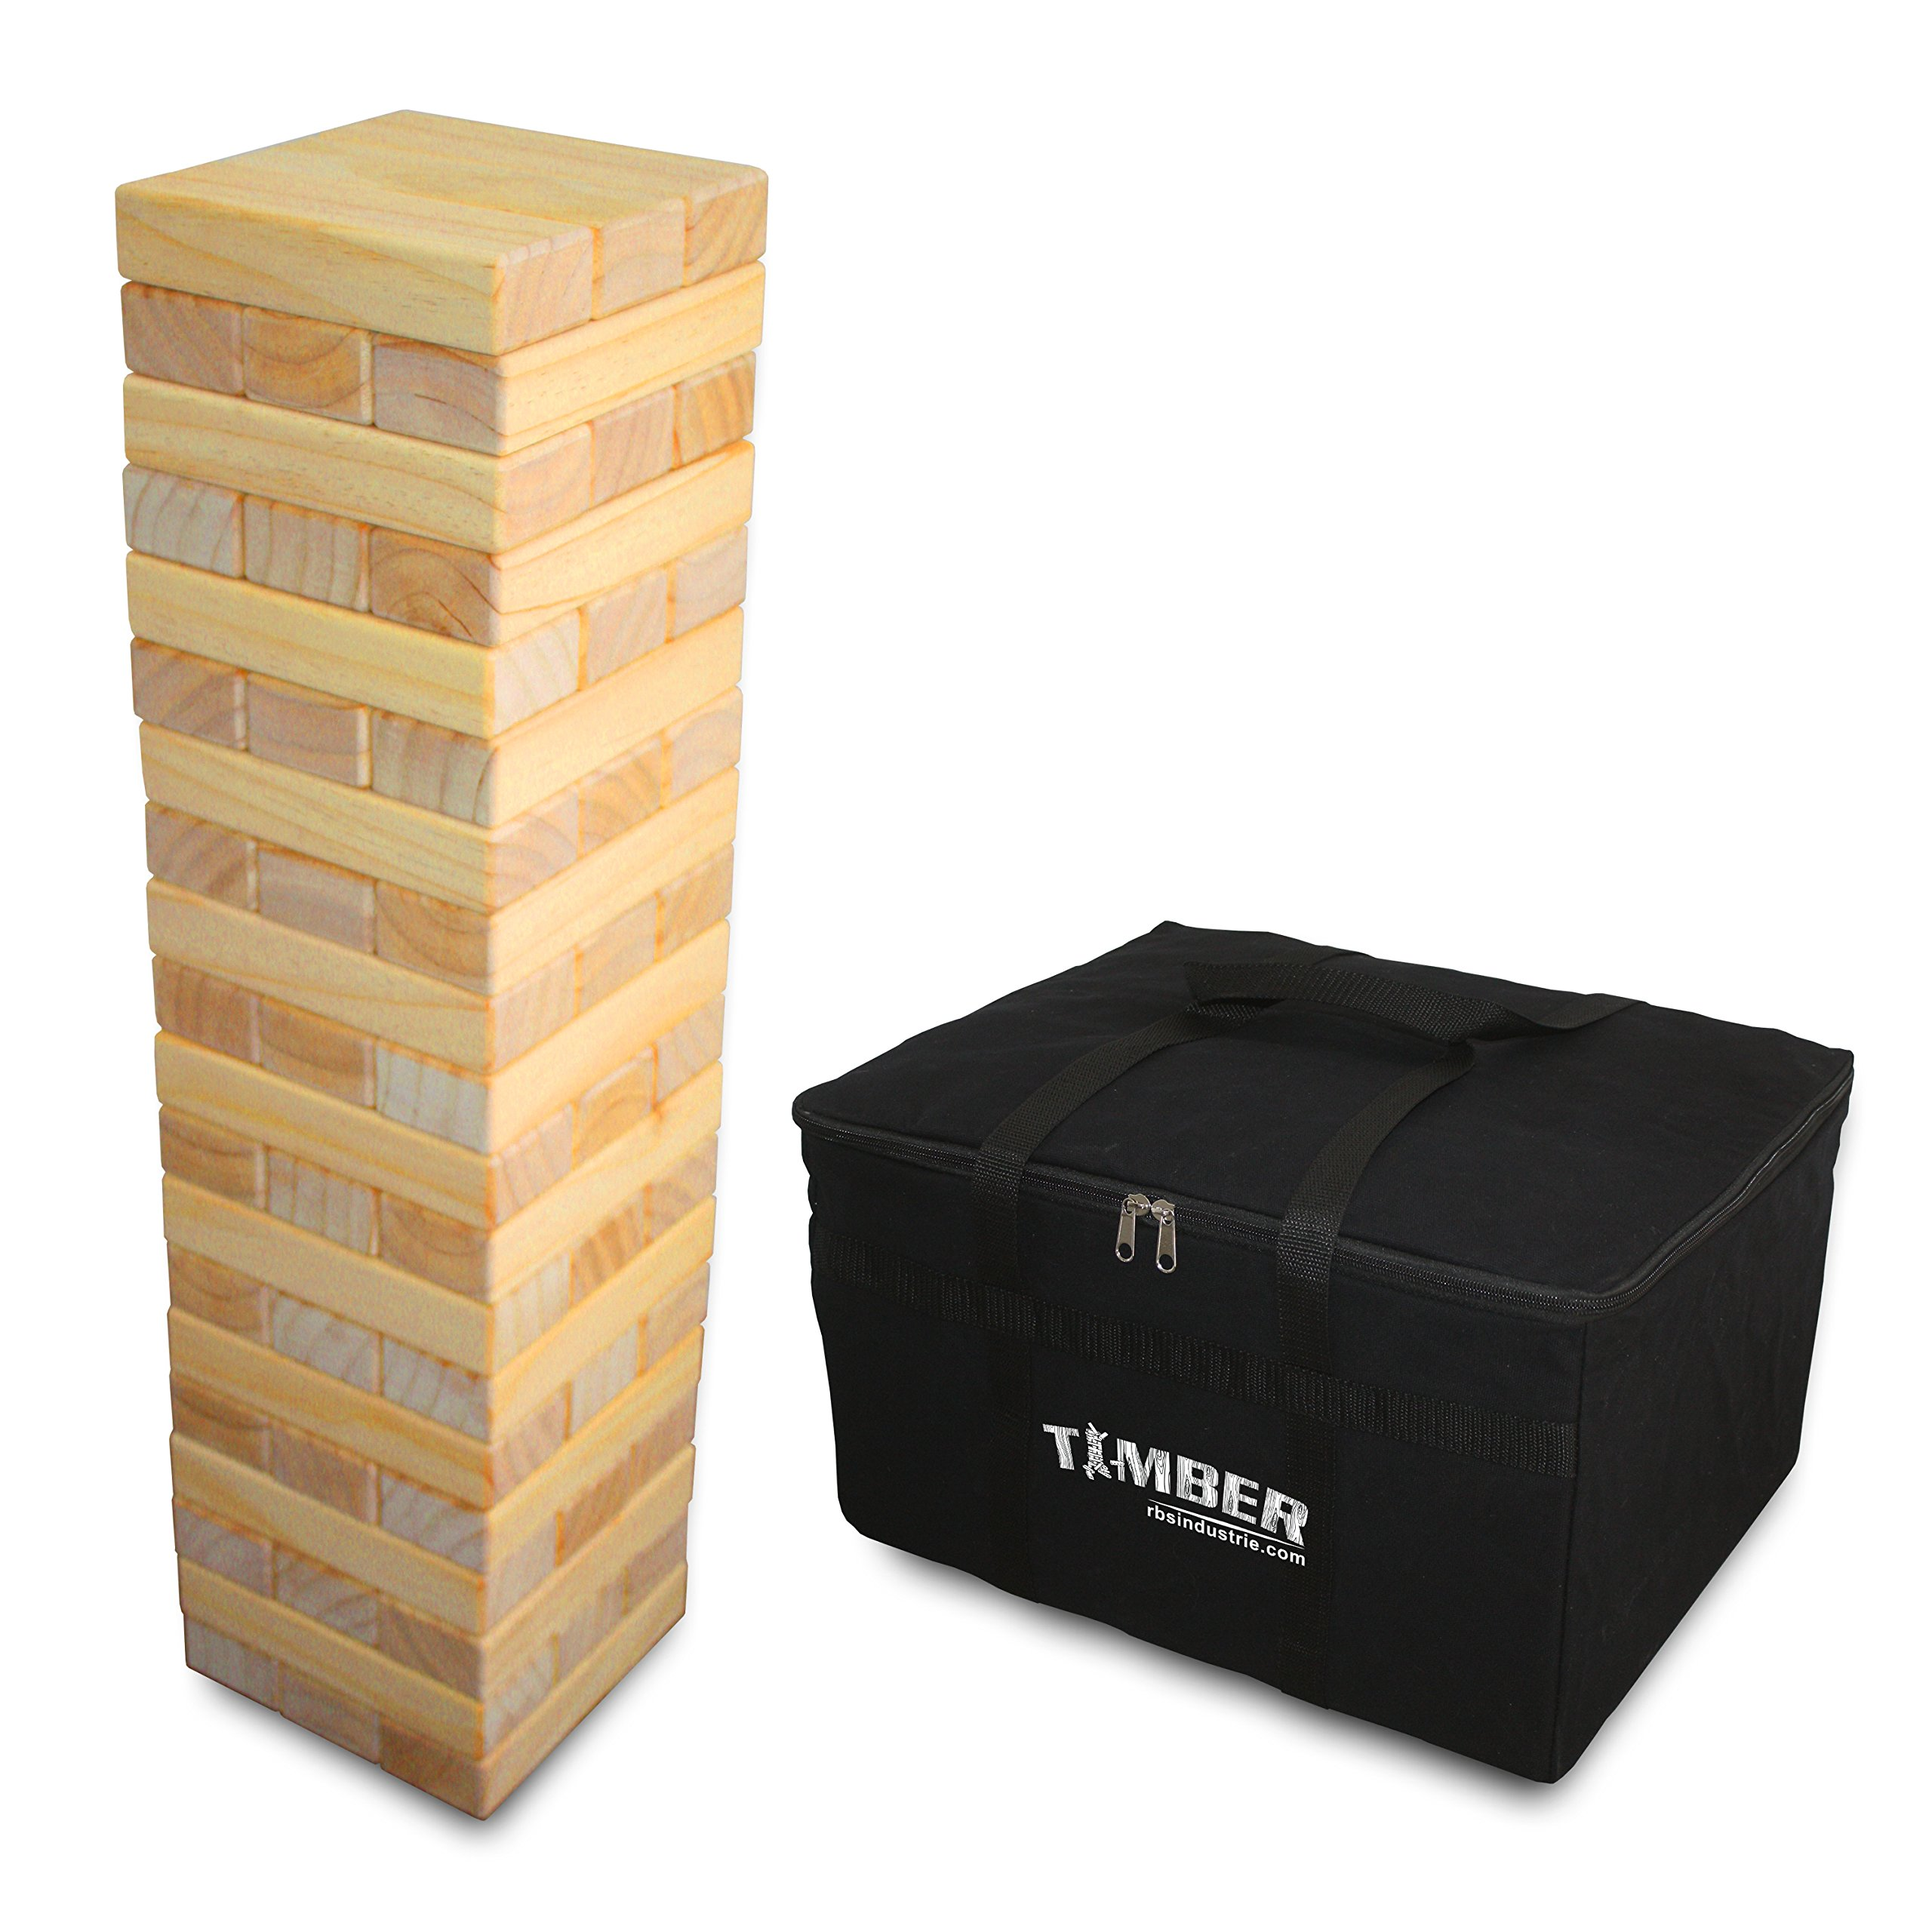 Giant Timber - Jumbo Size Genuine Hardwood Game - Ideal for Outdoors - Perfect for Adults & Kids 8Yrs+ - 60 XL Pcs 7.5 x 2.5 x 1.5 Inches - Over 5 Feet Big